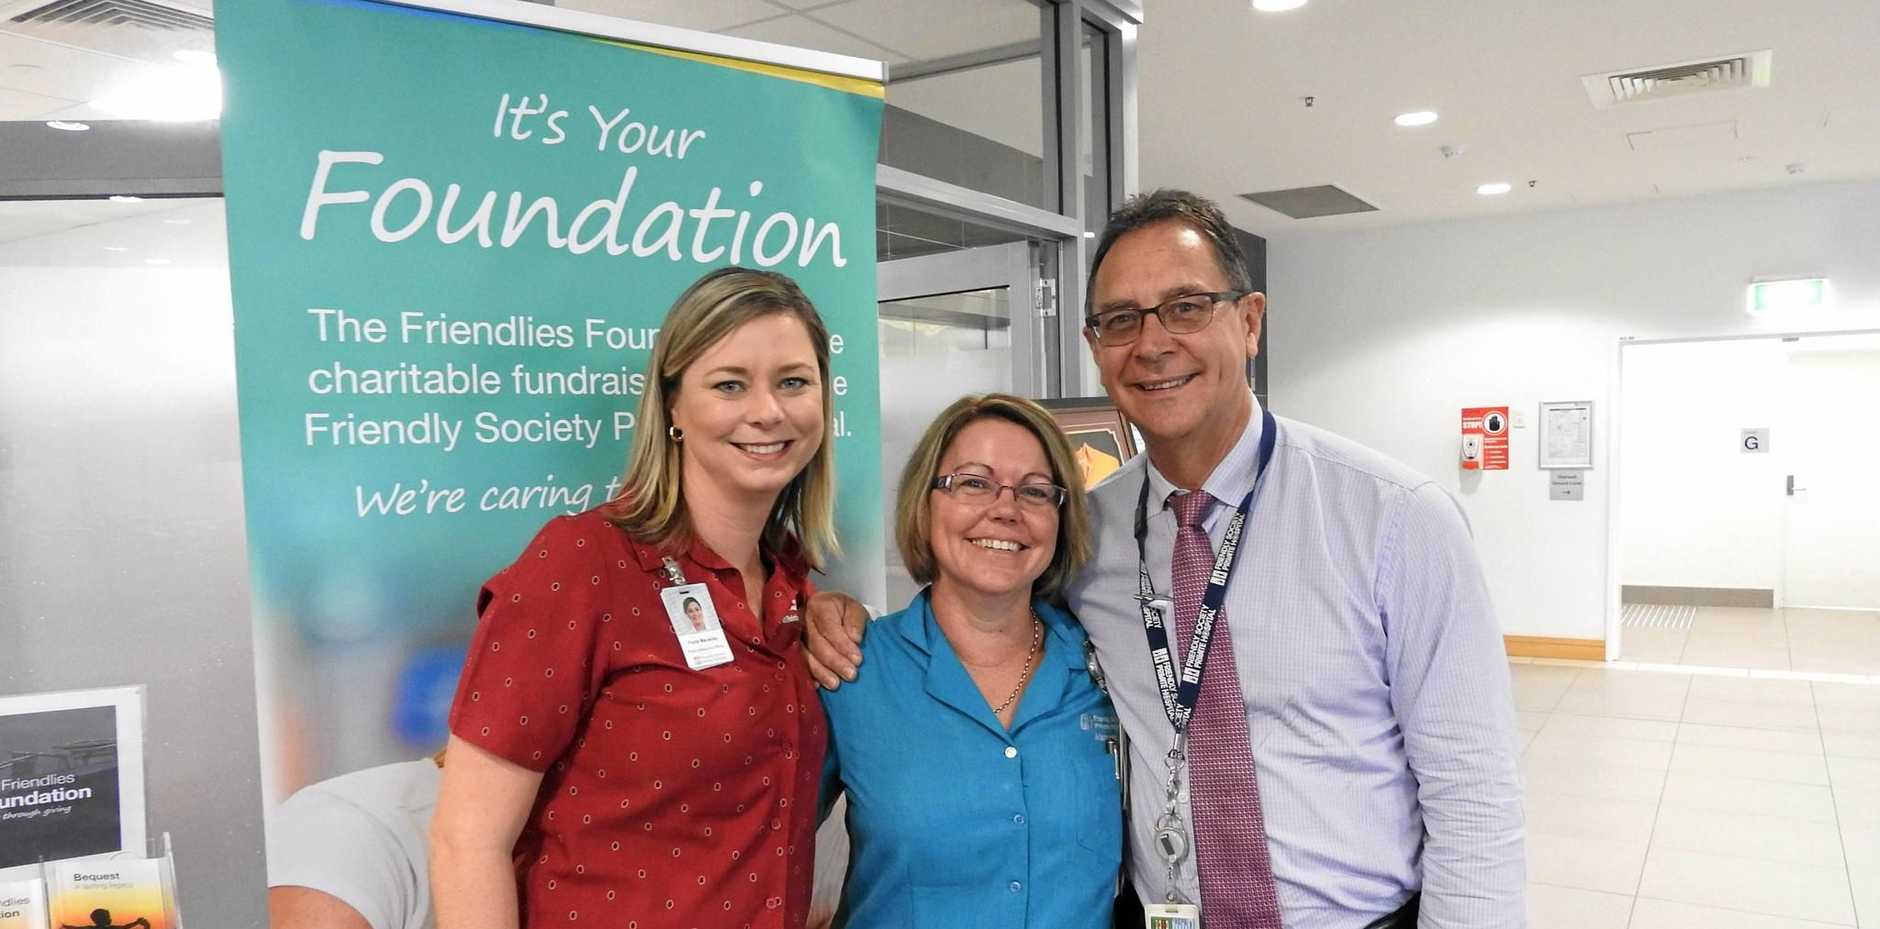 ONCOLOGY DONATION A BOOST: The Friendlies Foundation public relations officer Fiona Macaulay, Day Oncology Unit nurse unit manager DA Halpin and Friendly Society Private Hospital CEO Alan Cooper.